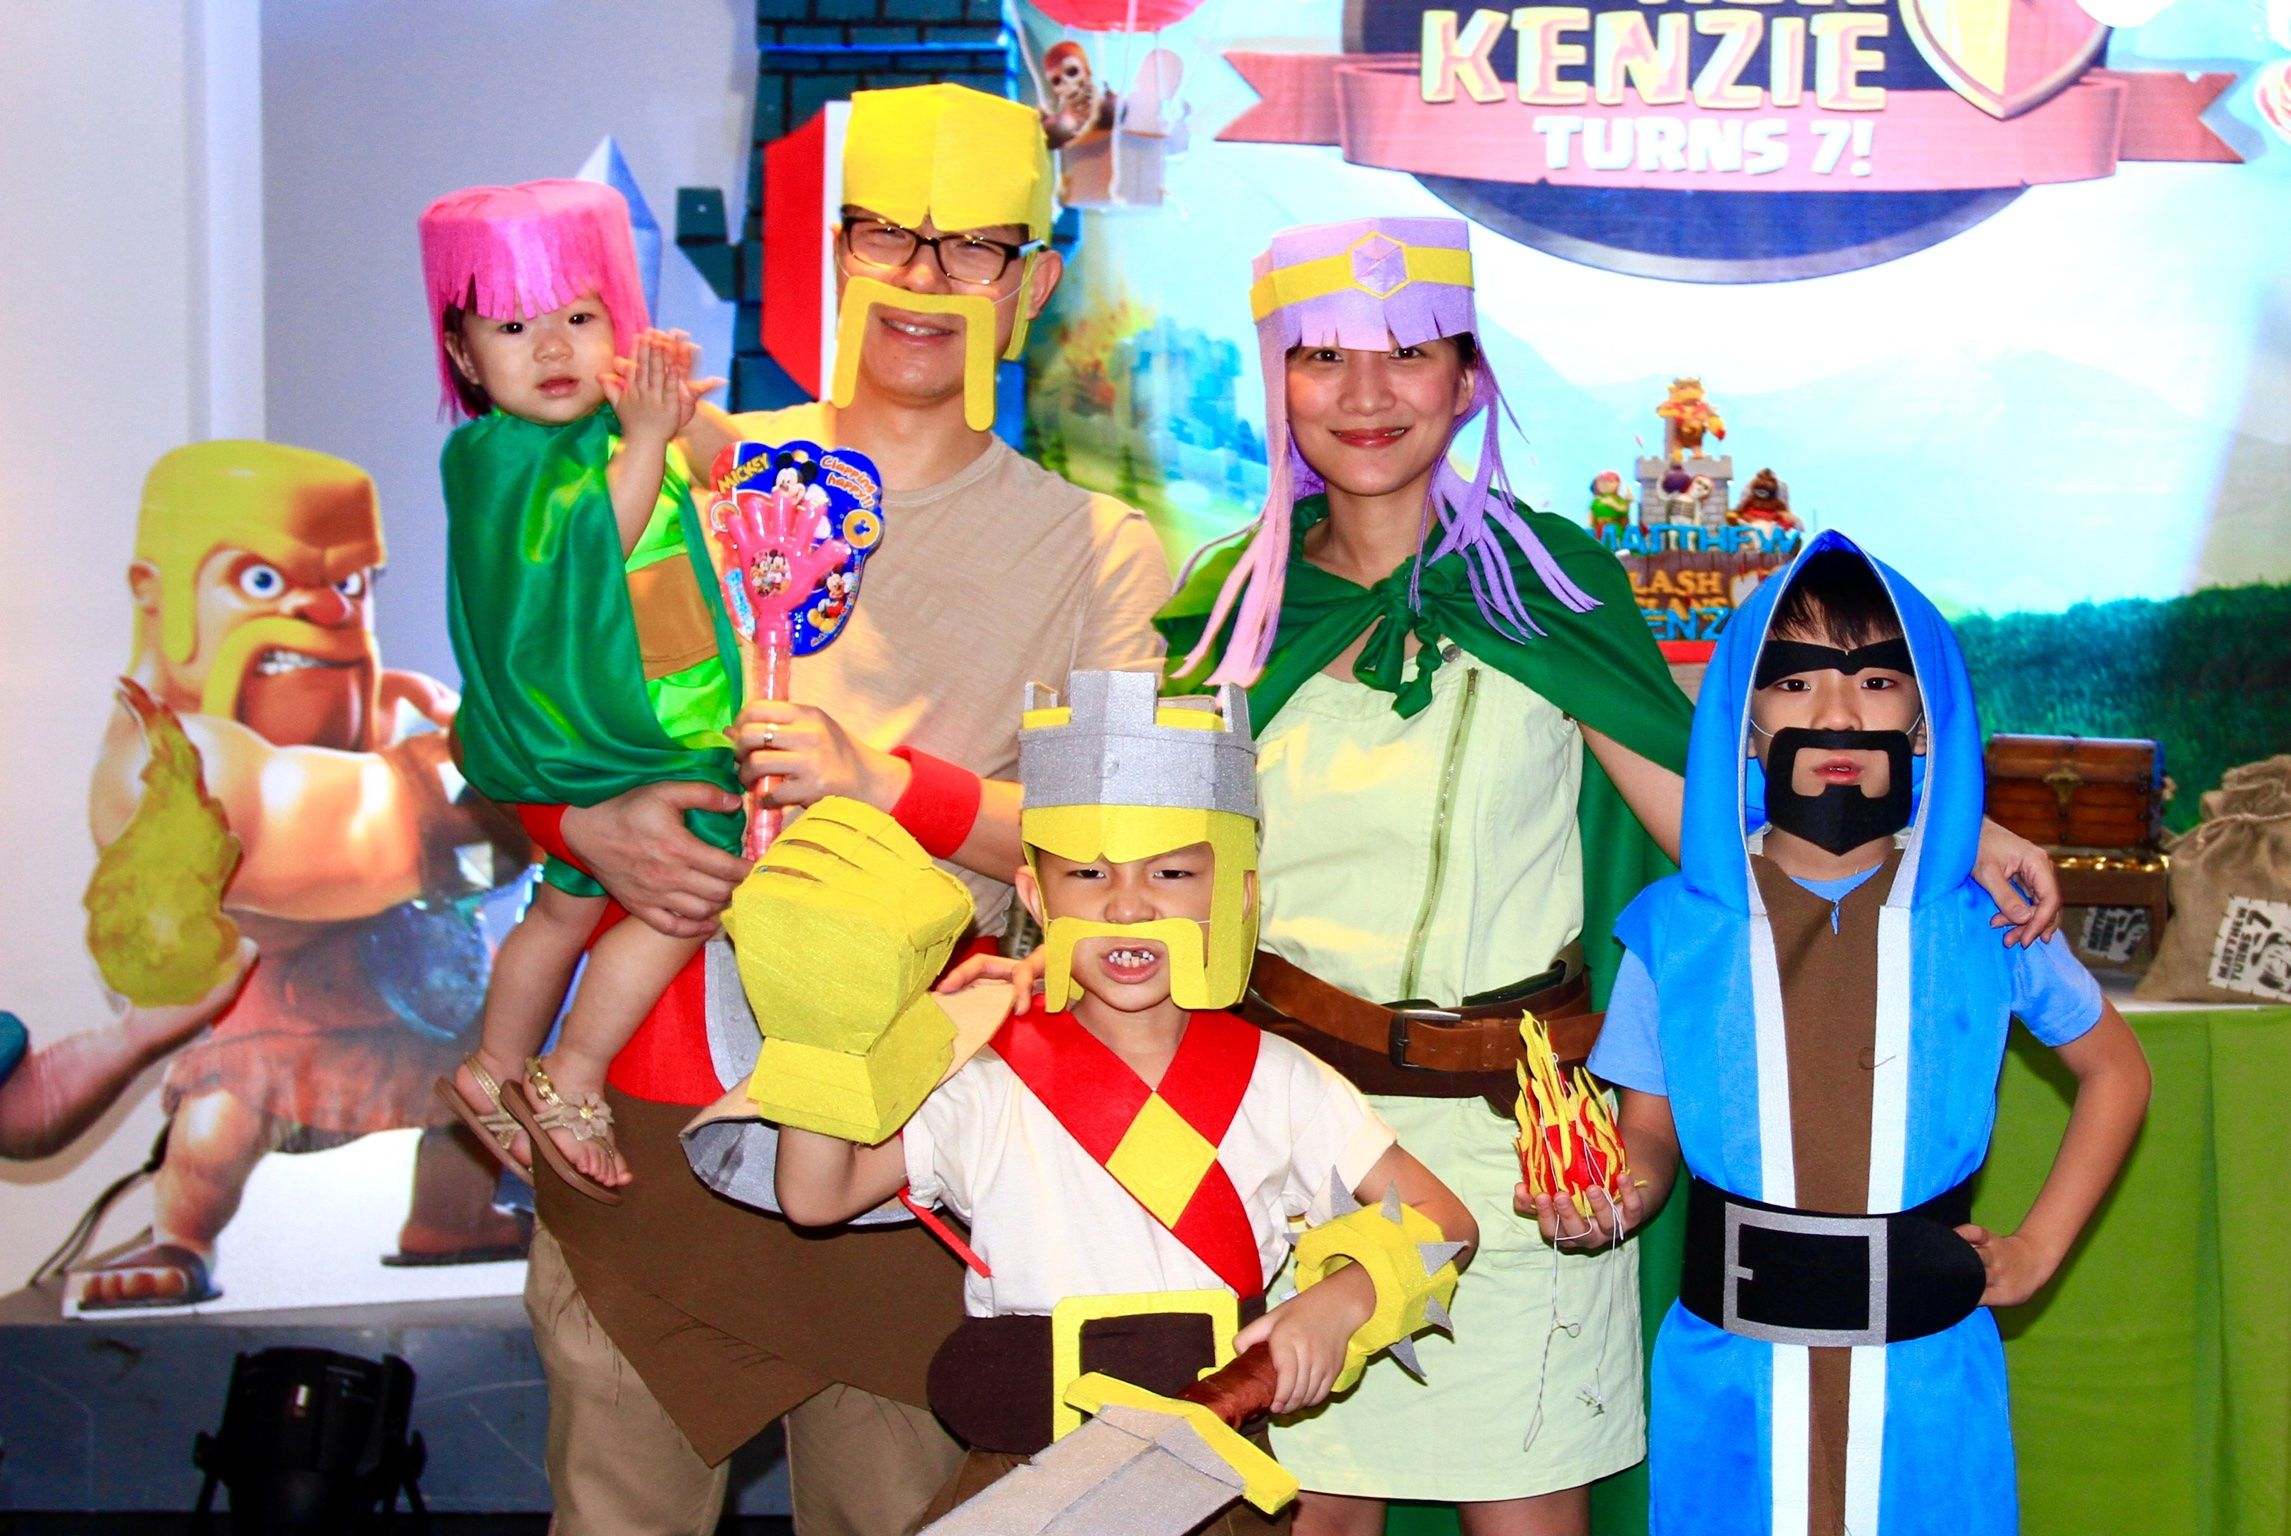 Clash of Clans Party Ideas- diy costumes, family costume, clash of ...